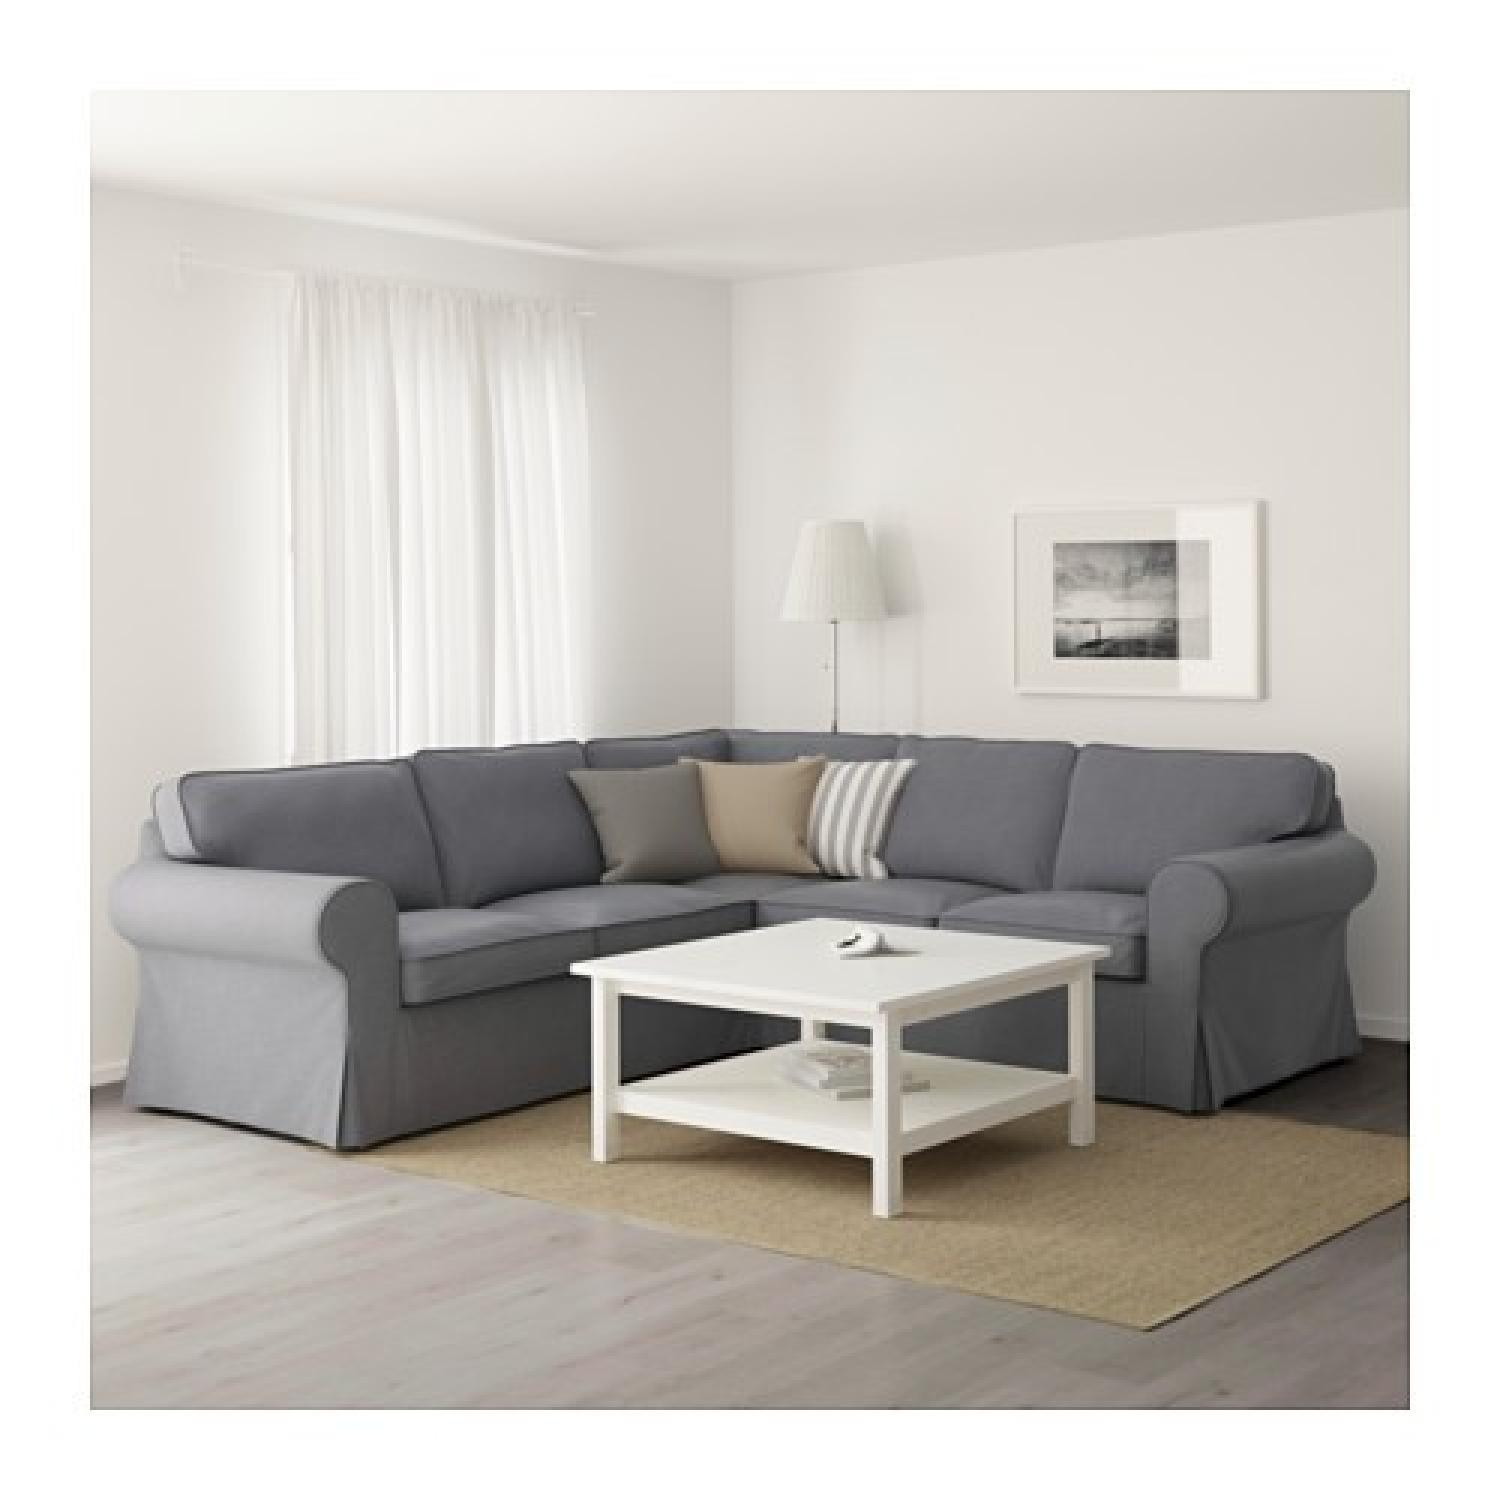 Ikea Dark Grey Sectional Sofa - image-3